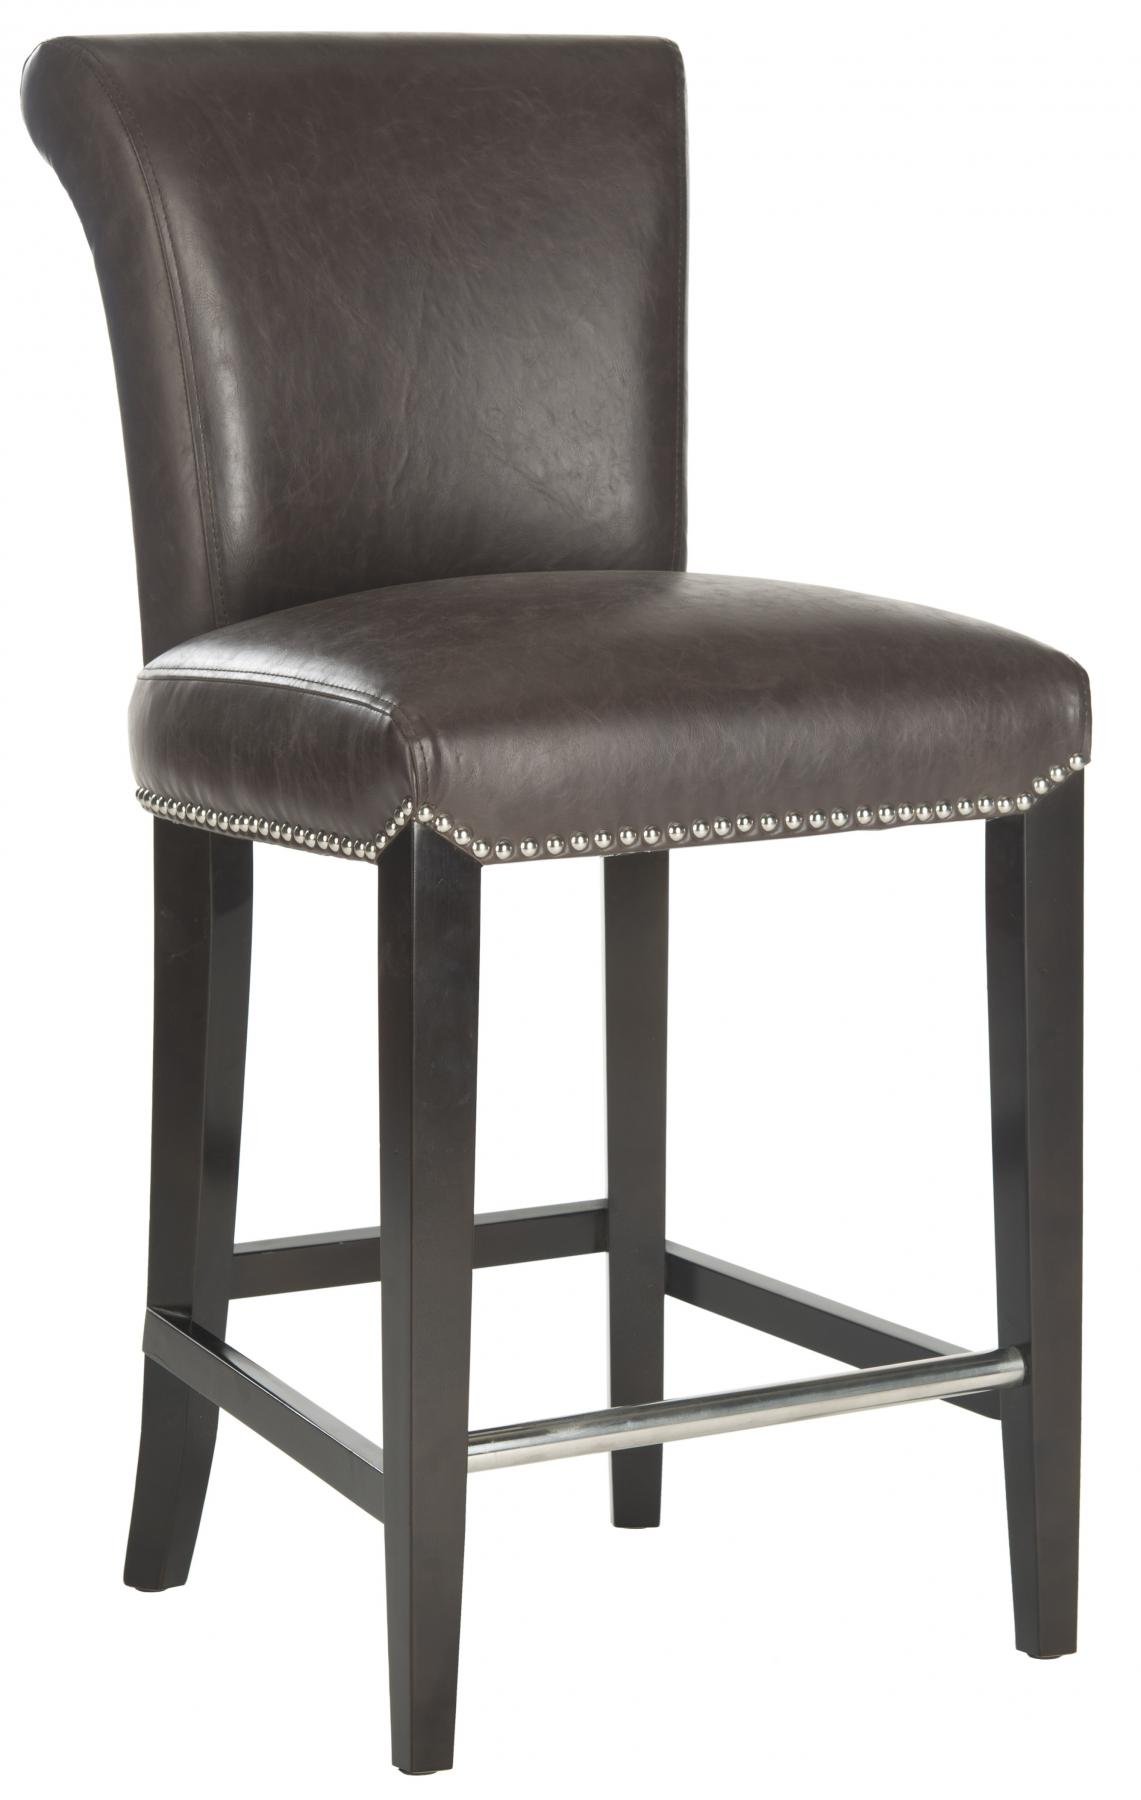 Safavieh - MCR4509G SETH COUNTER STOOL - ANTIQUE BROWN